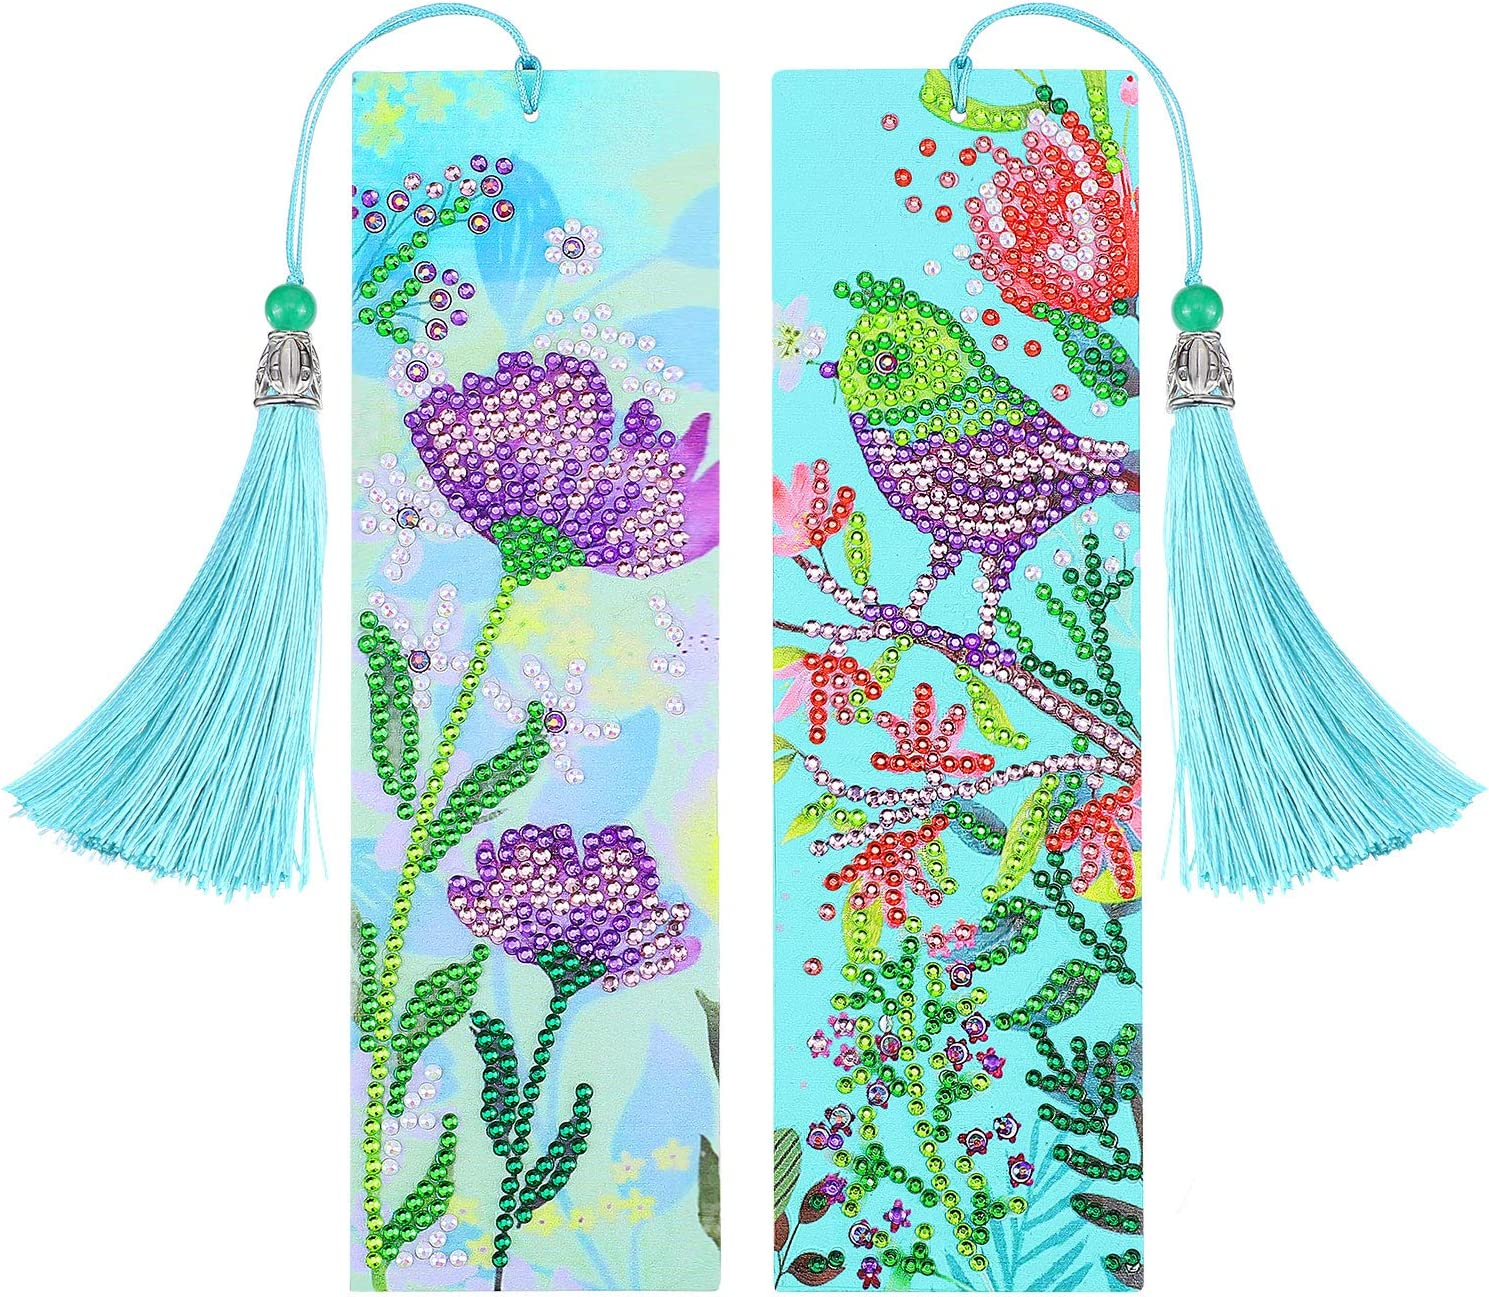 Kitcheblest Chinese Style Fan-Shaped Embroidery Bookmark Painting Cross Stitch Tassel Bookmarks Set Books Gift for Women Kids Round Fan-Style1